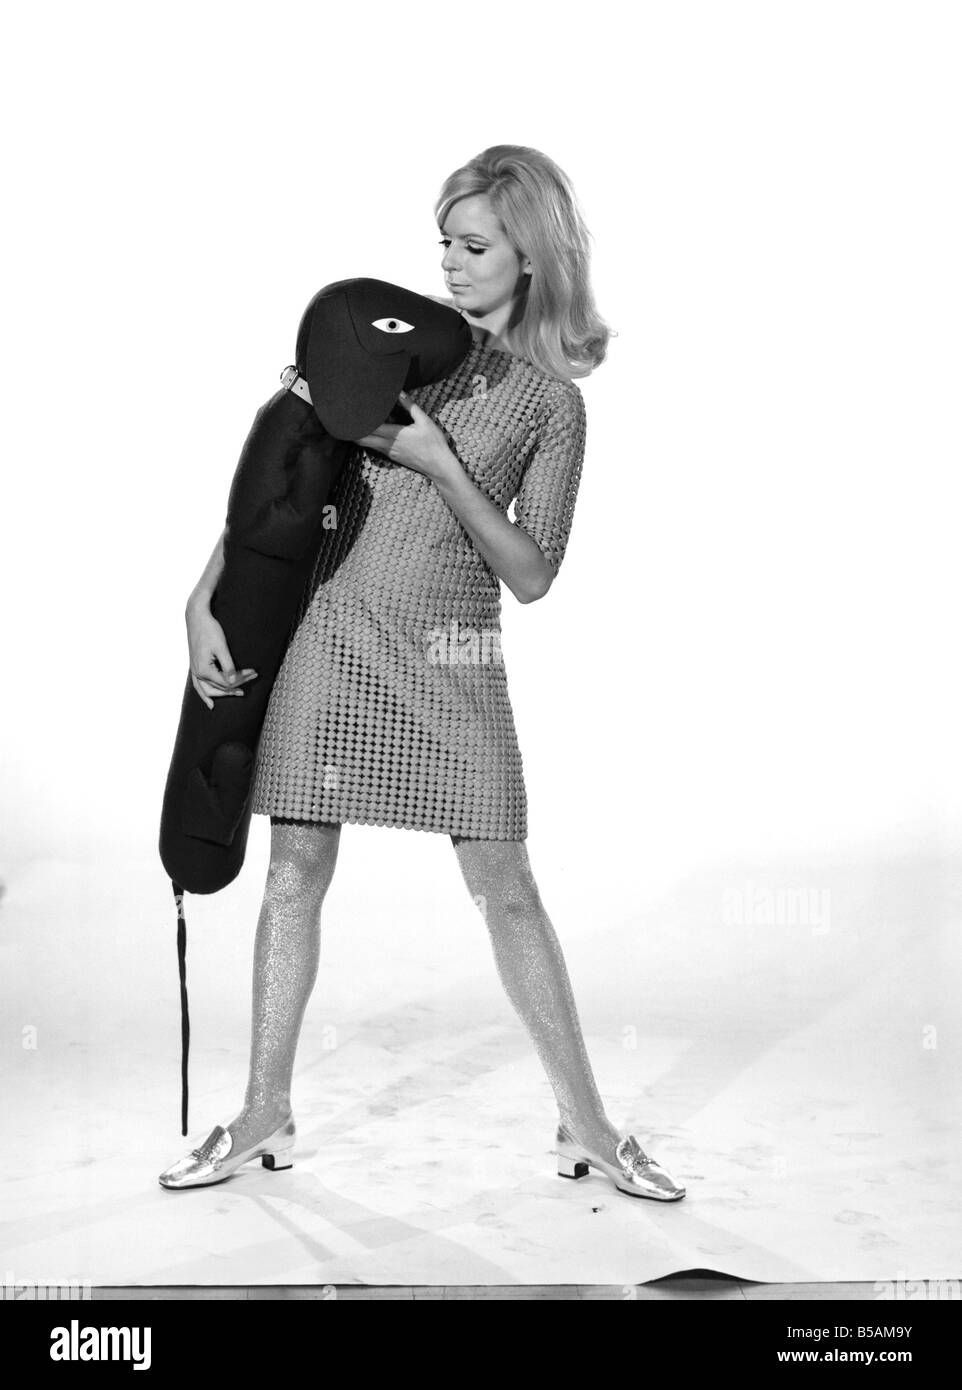 Model Anna Maria Greaves with Roly dog soft toy and draft excluder. 1959 D169-007 - Stock Image